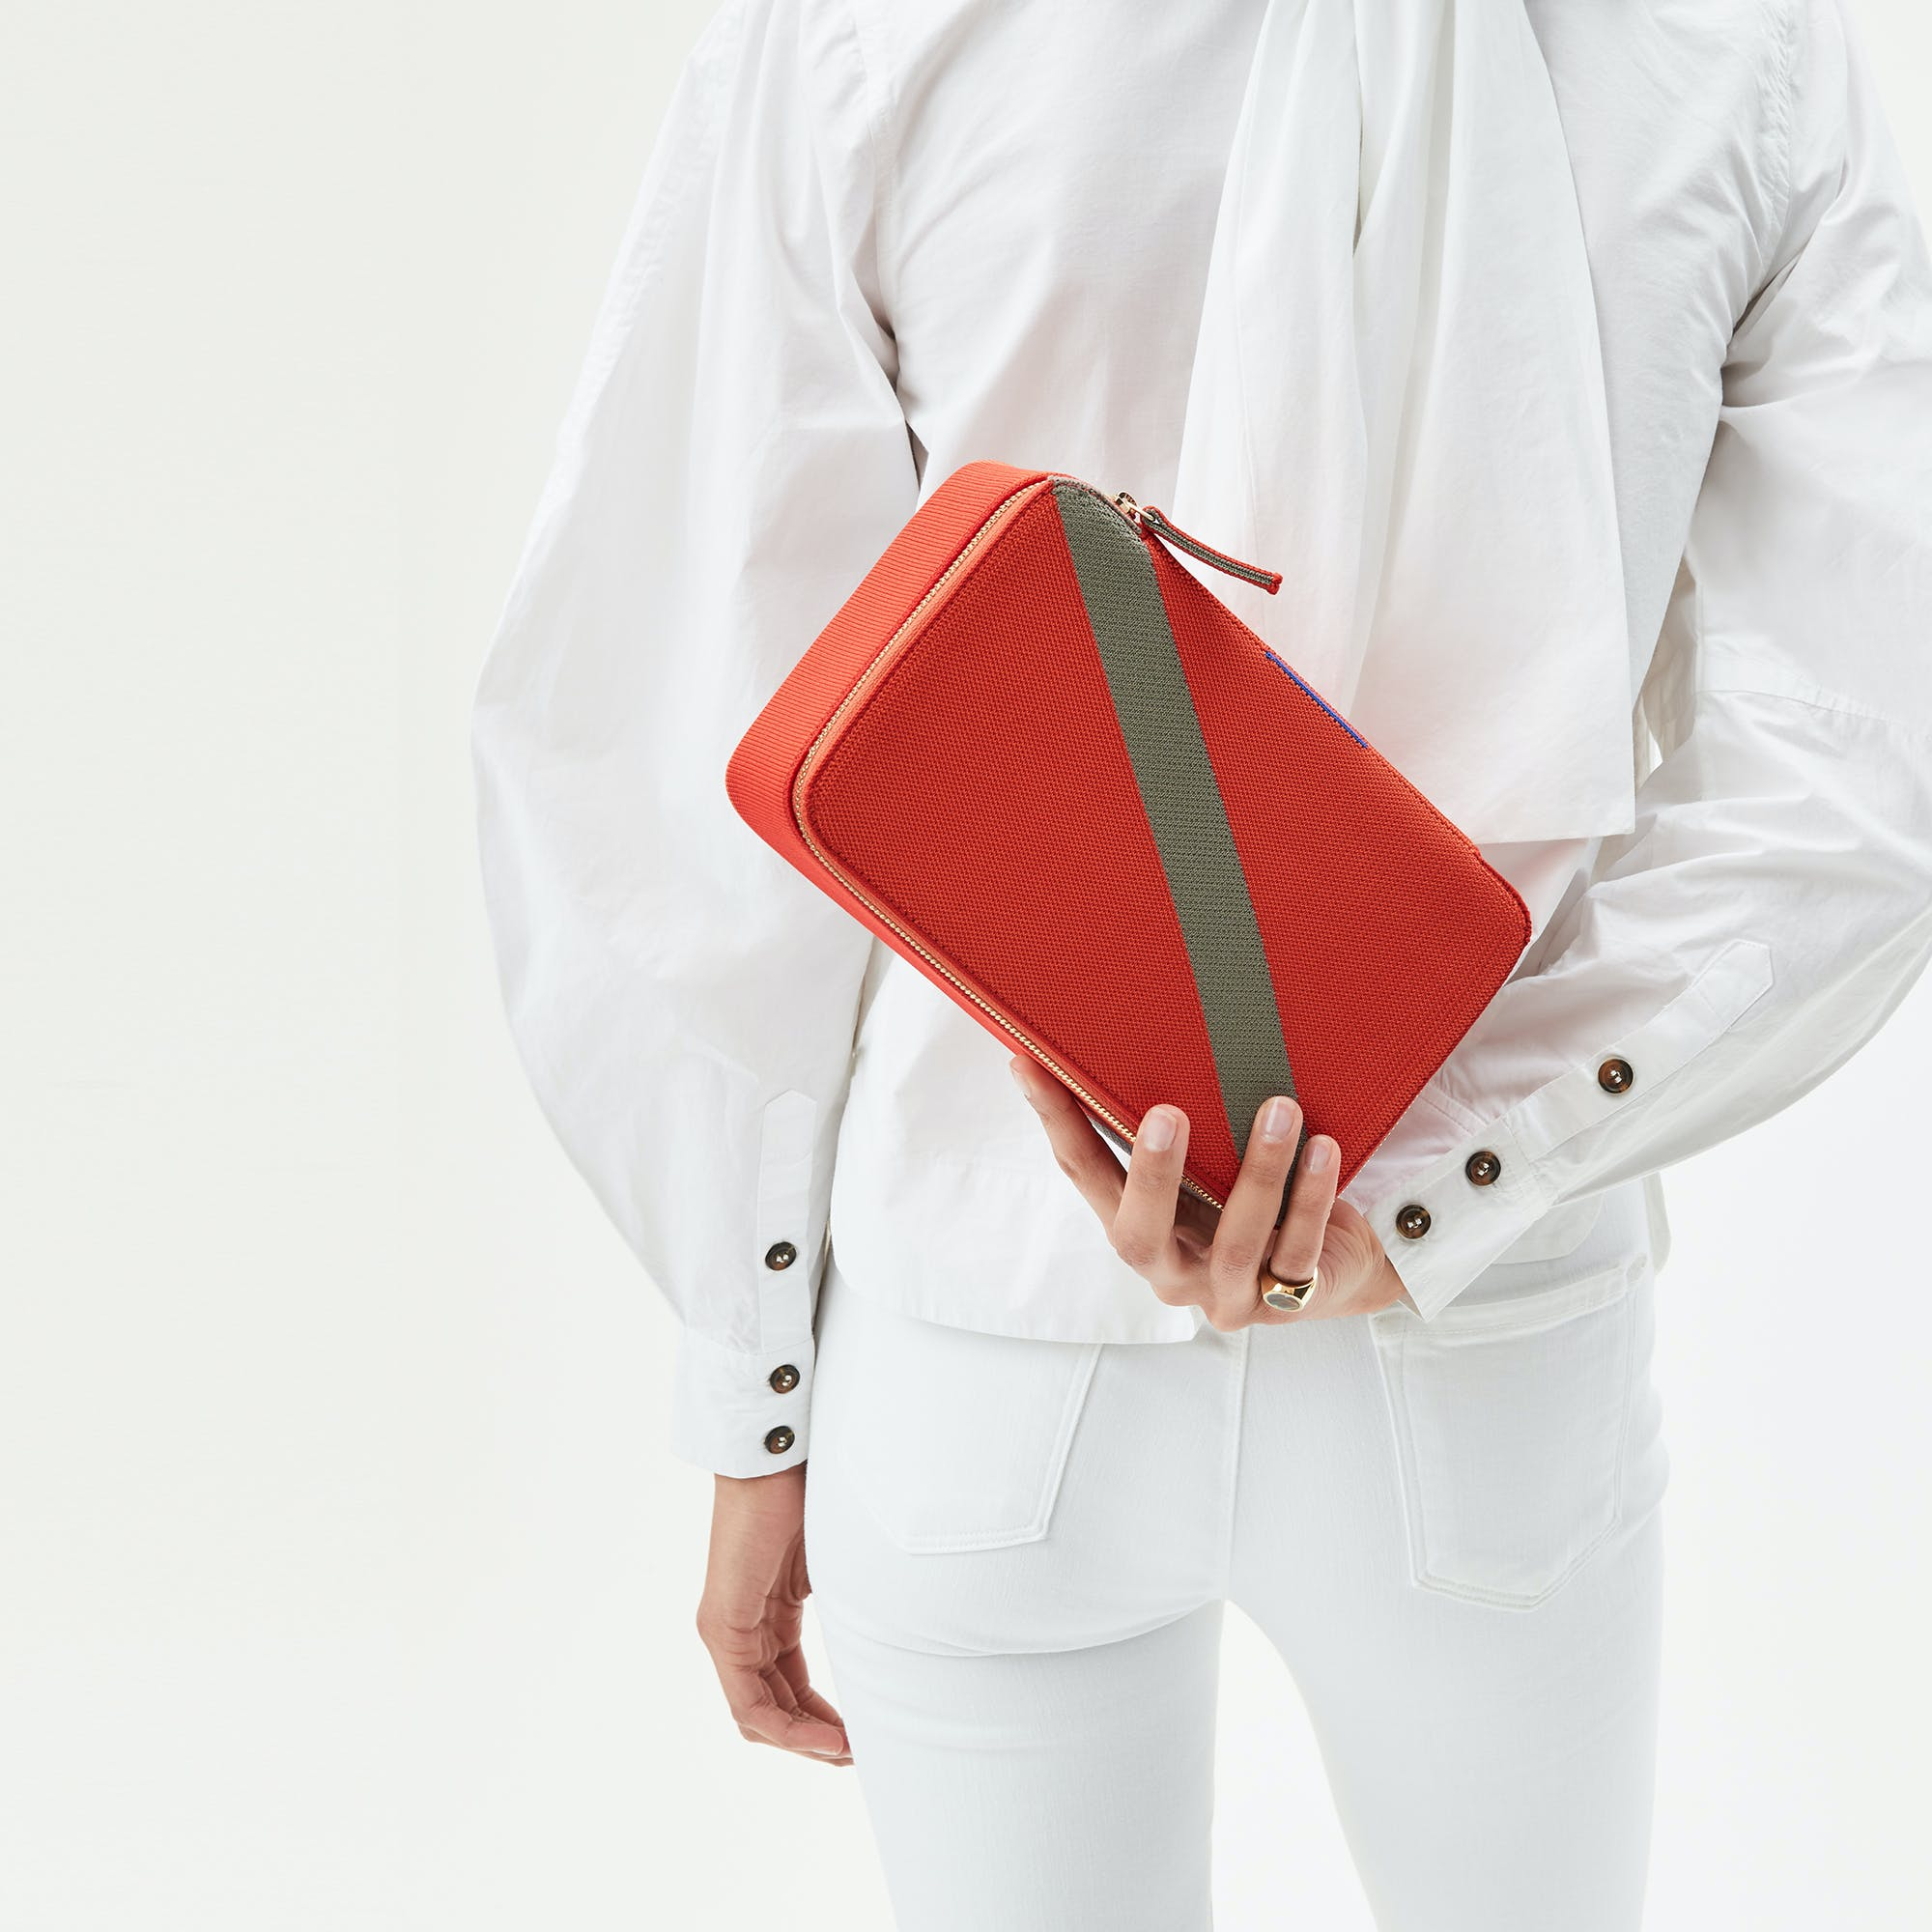 The Large Catchall in Bright Poppy shown from the front.